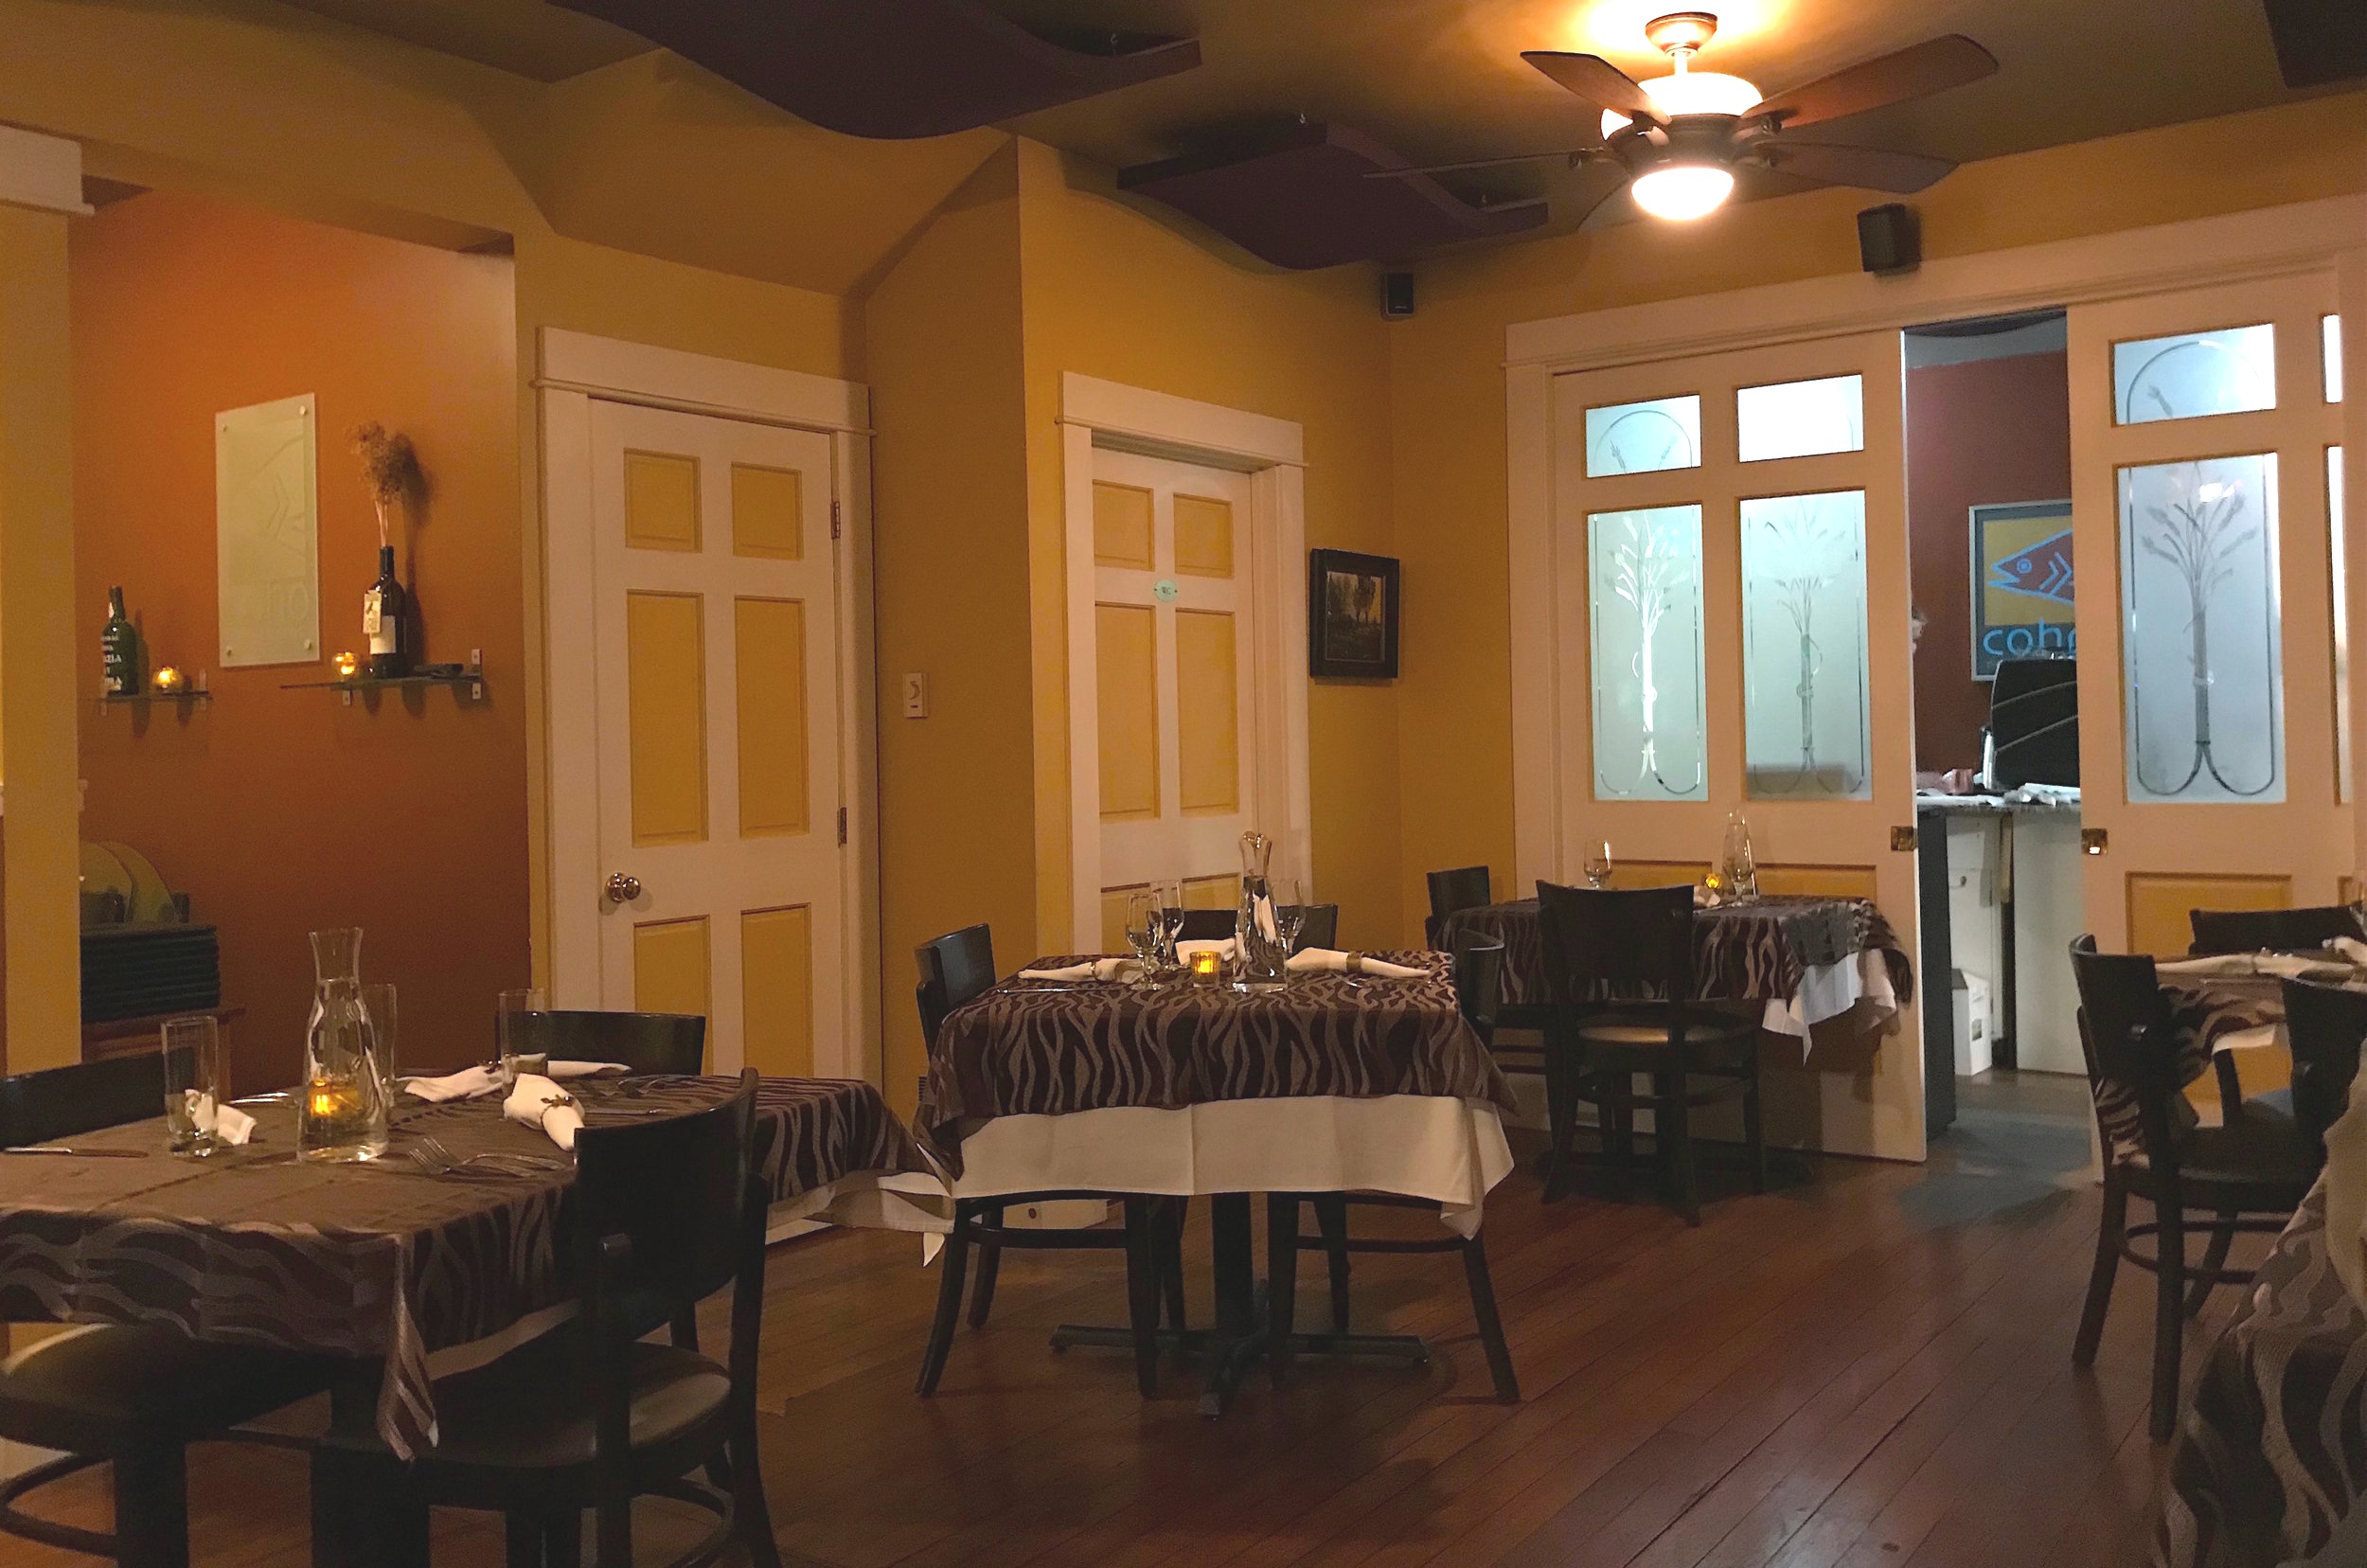 COHO Restaurant's romantic dining room and kitchen entrance, where the magic happens